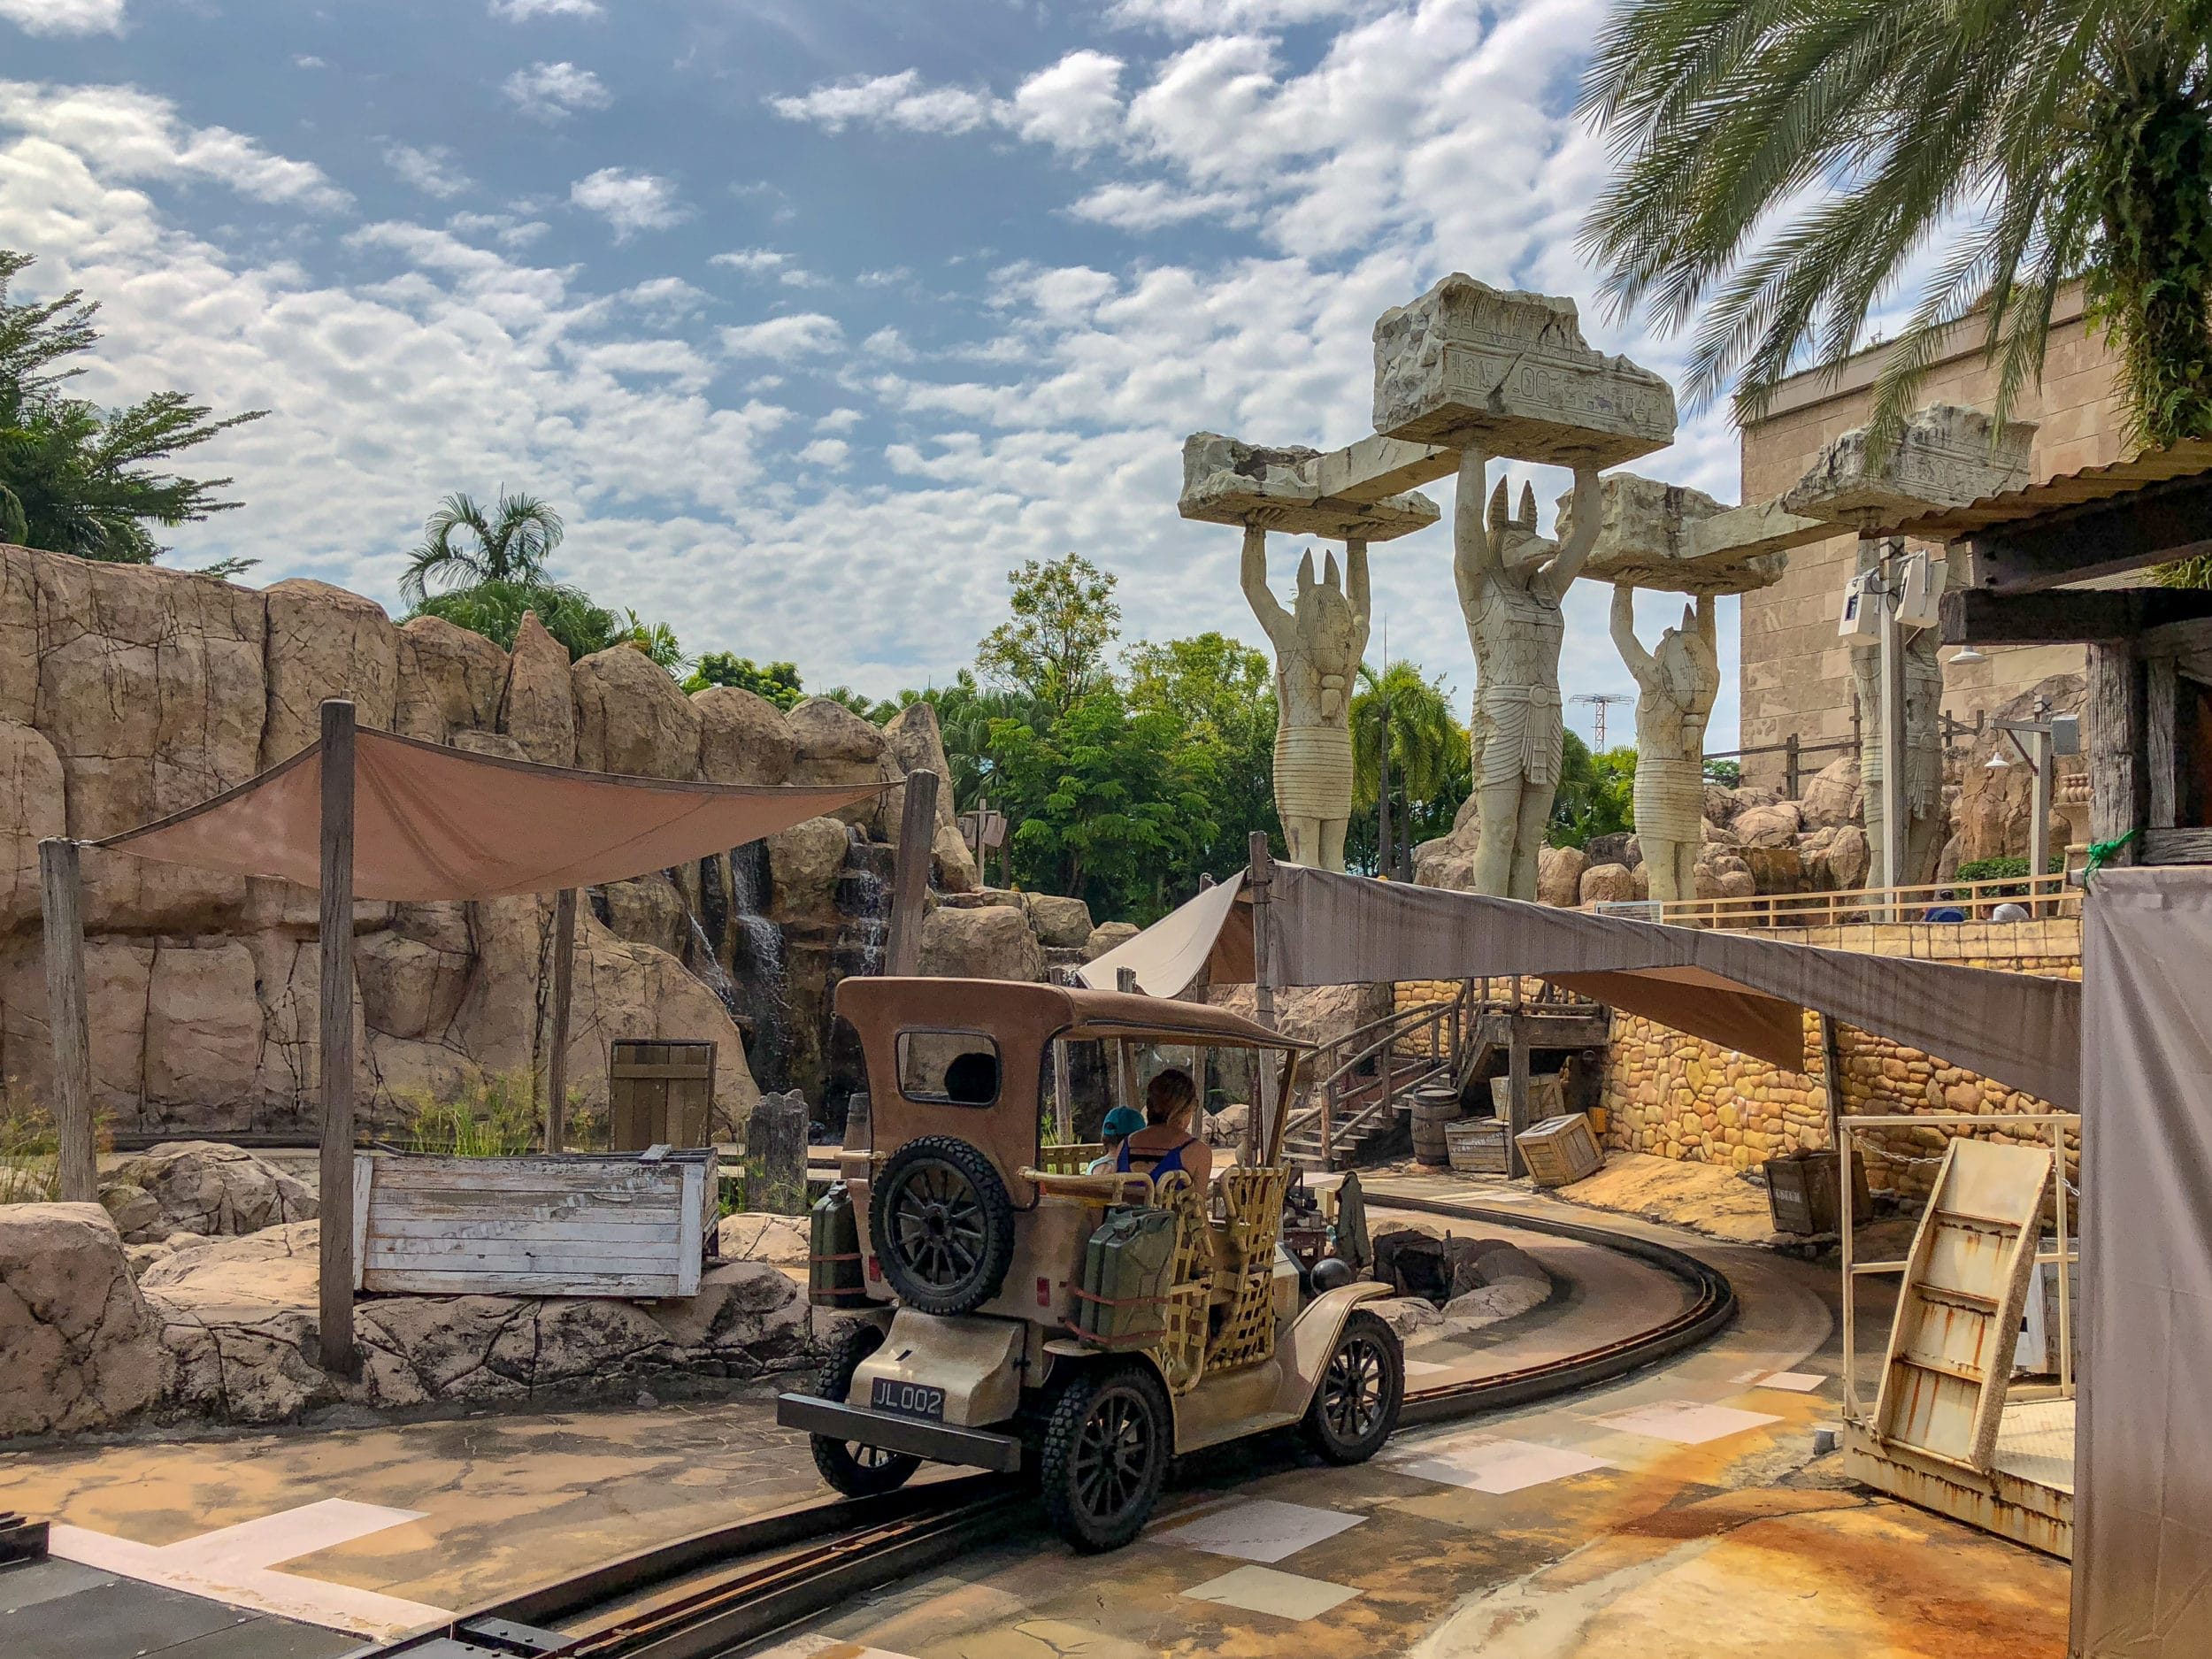 Universal Studios Singapore Treasure Hunters ride